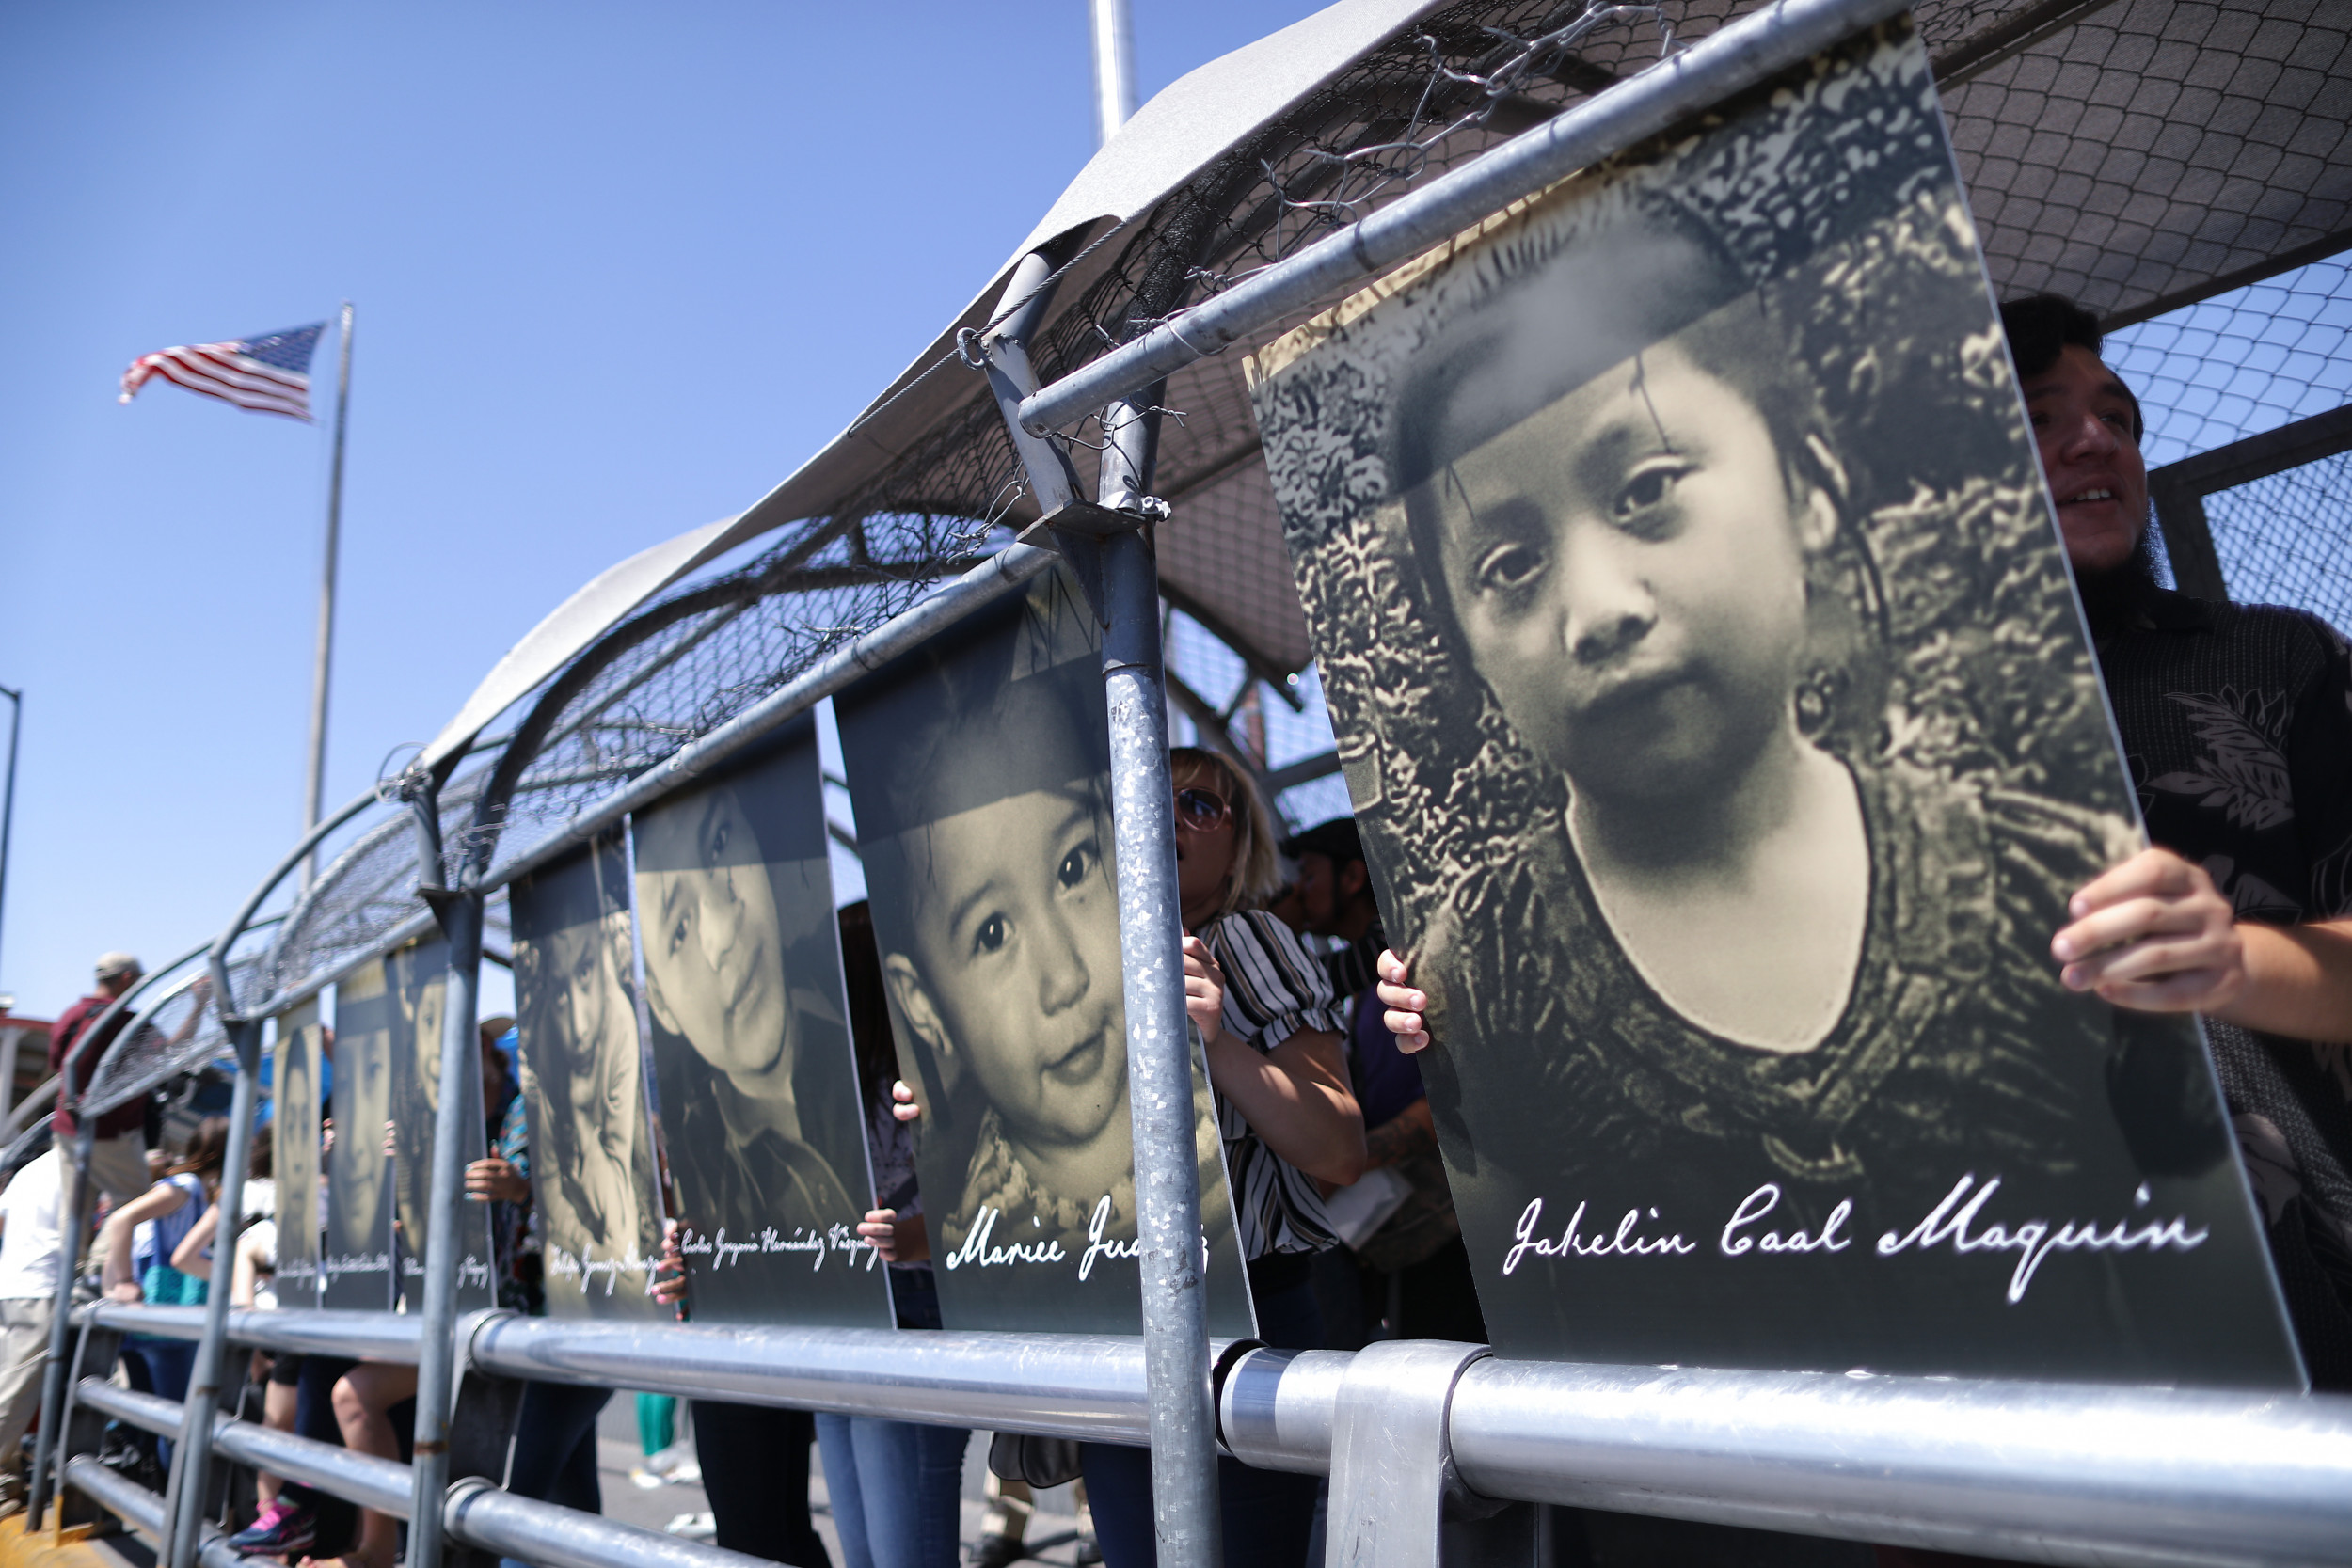 Migrant Border Deaths Surge with 'Increased Enforcement and Militarization,' Expert Says